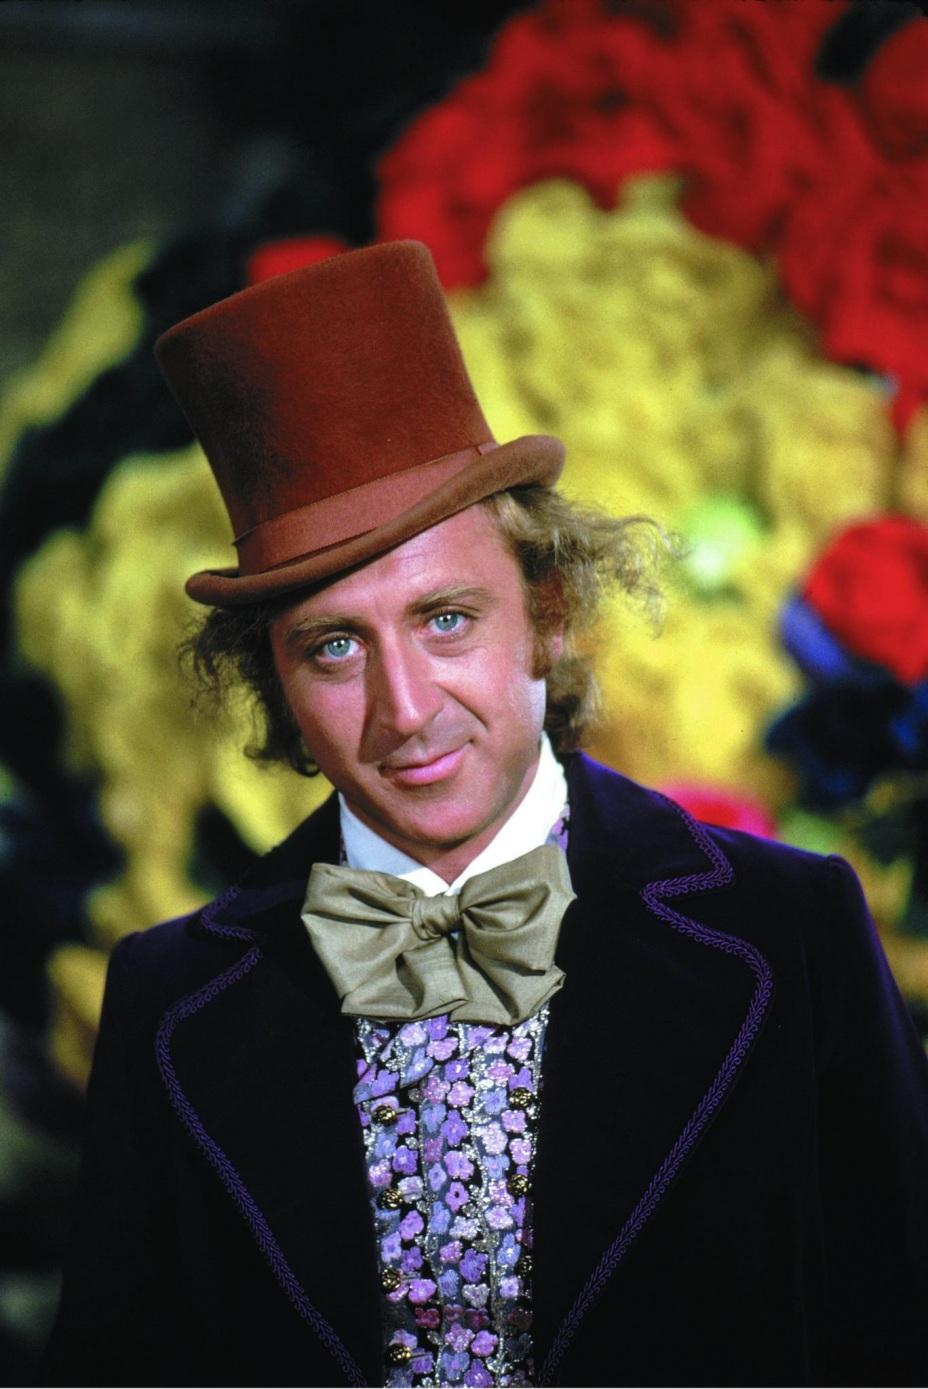 download willy wonka wallpaper gallery